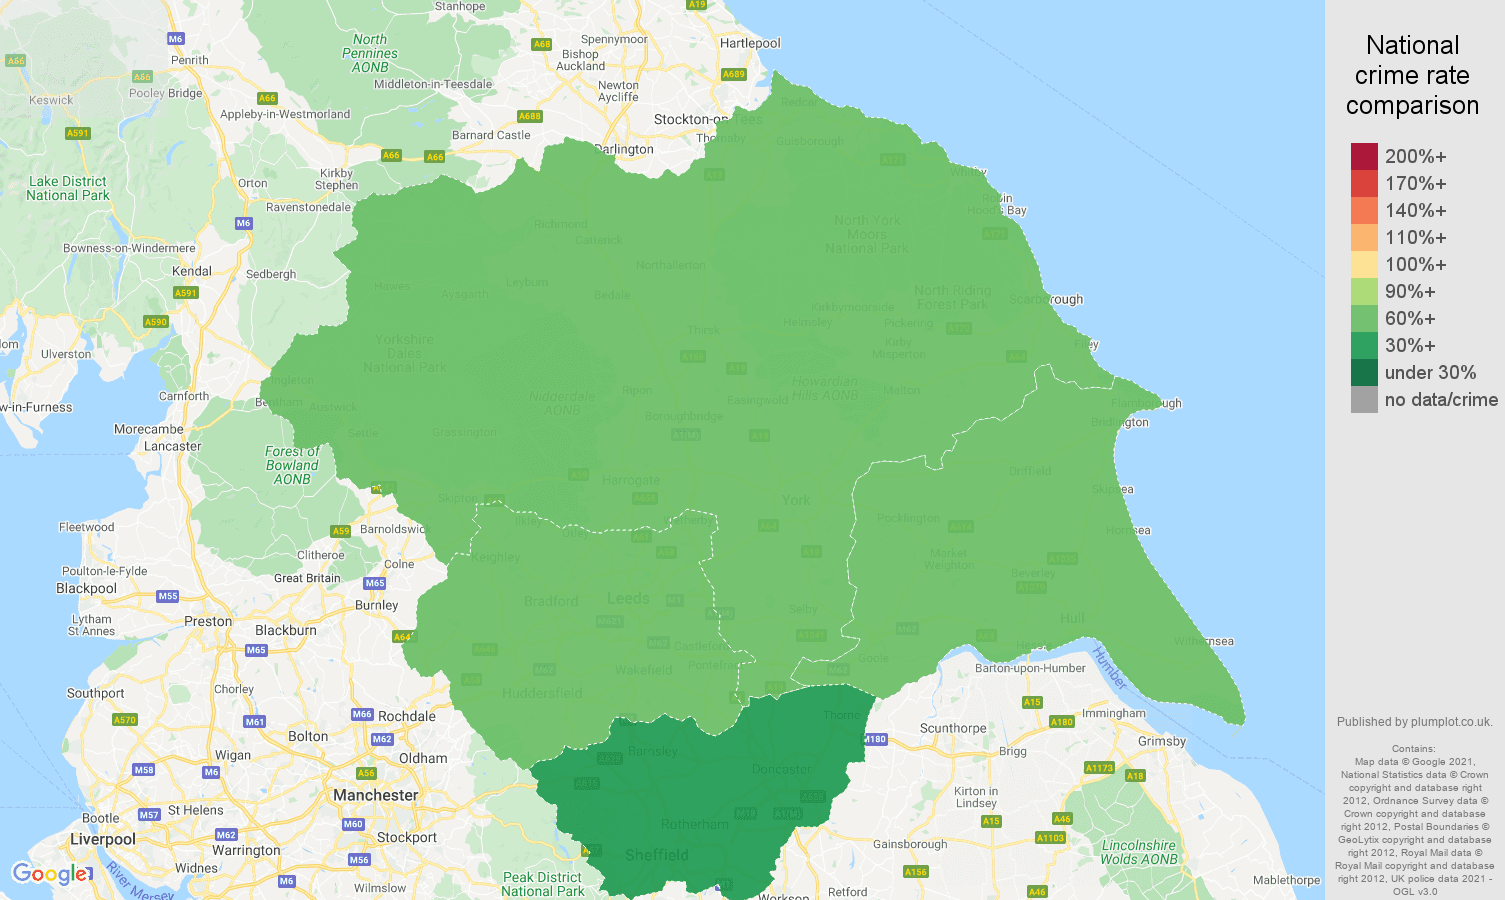 Yorkshire bicycle theft crime rate comparison map